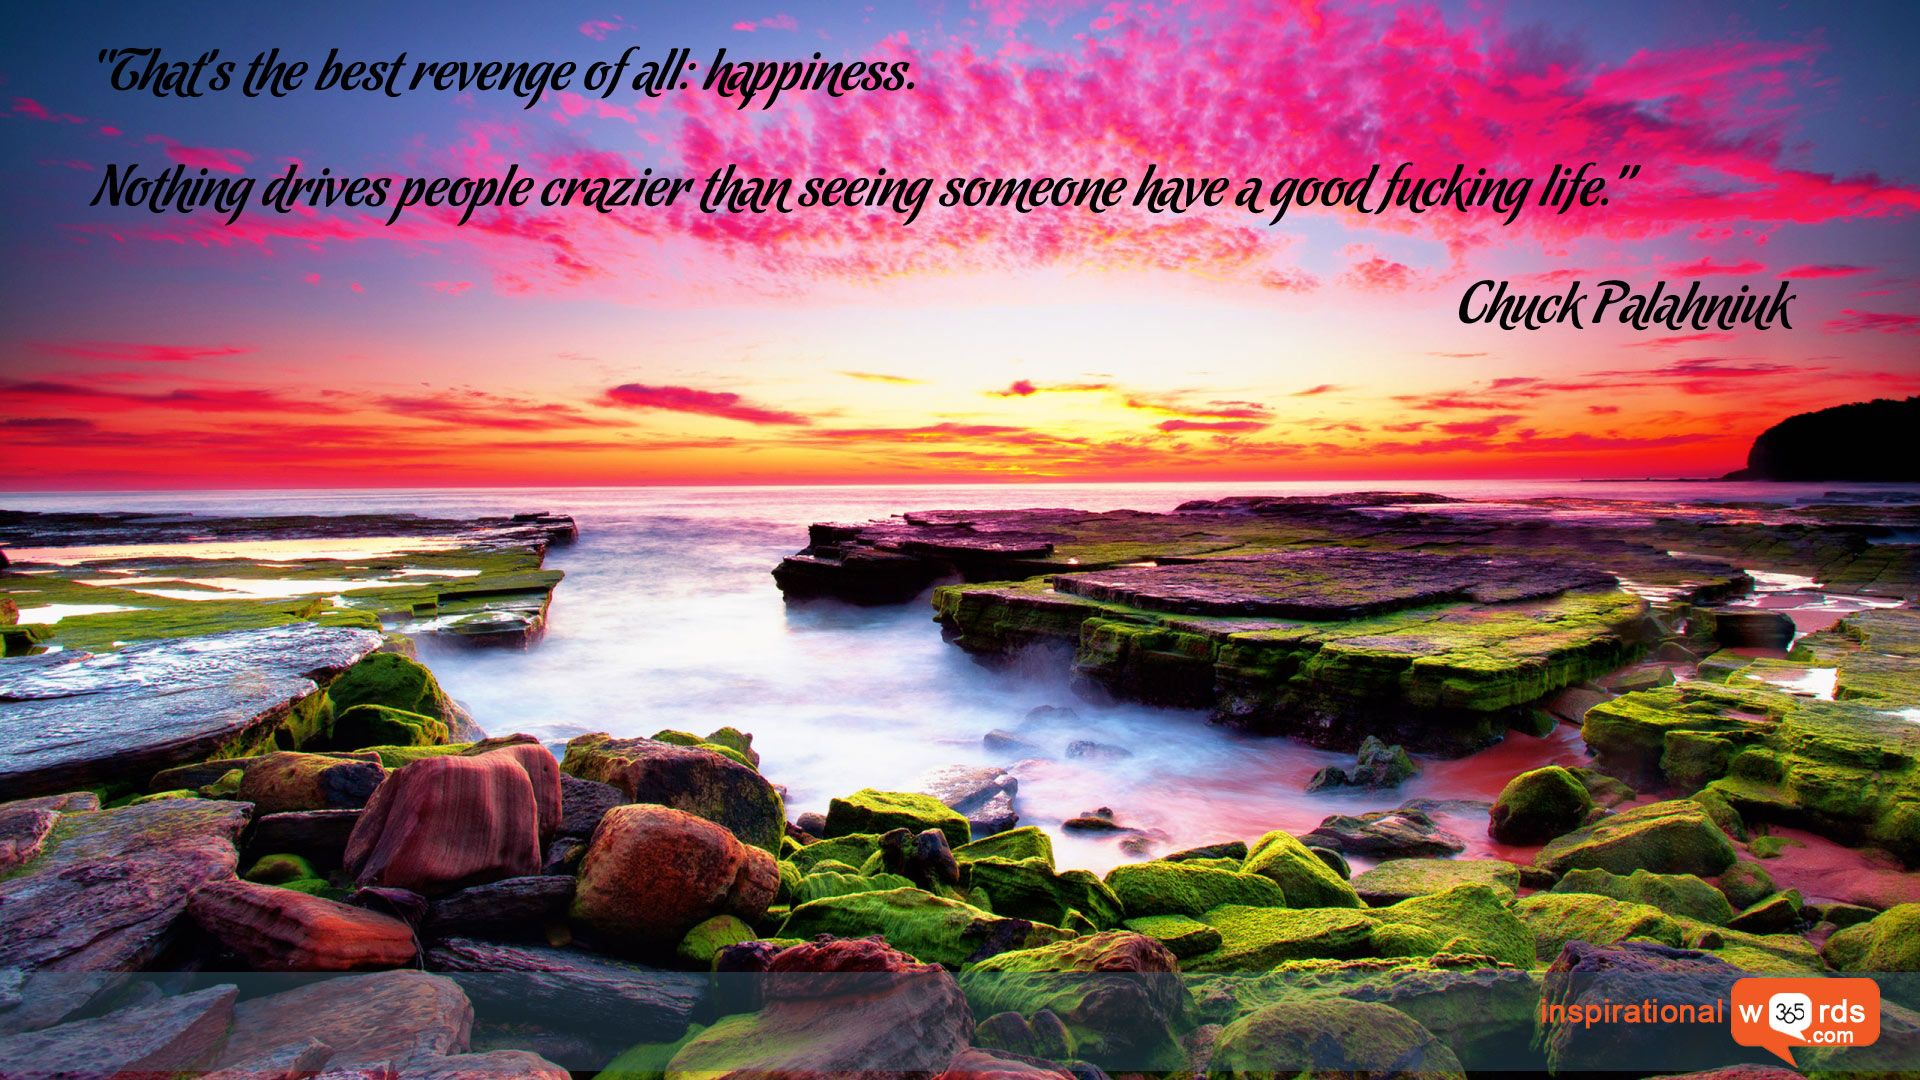 Inspirational Wallpaper Quote by Chuck Palahniuk Thats the best 1920x1080